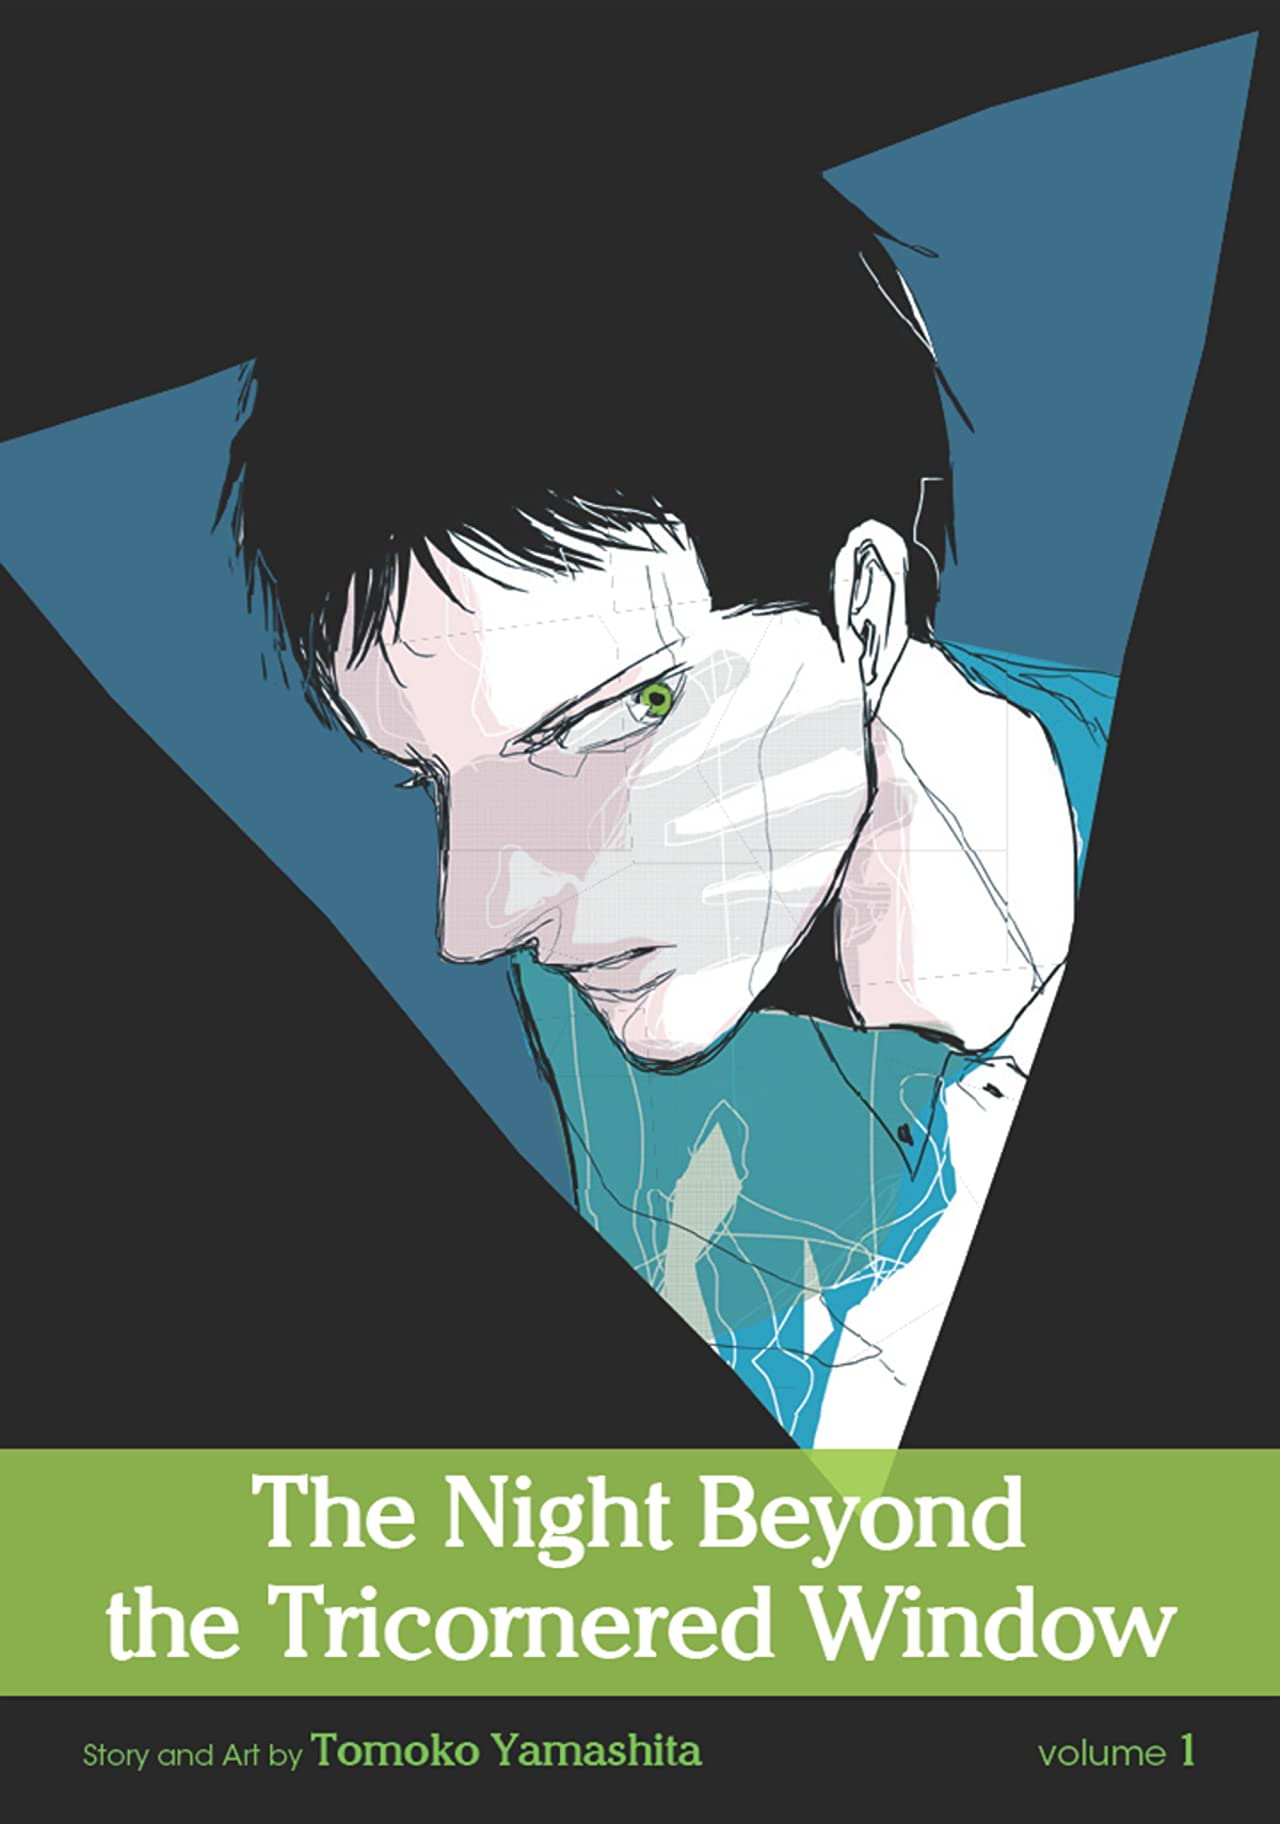 The Night Beyond the Tricornered Window Vol. 1